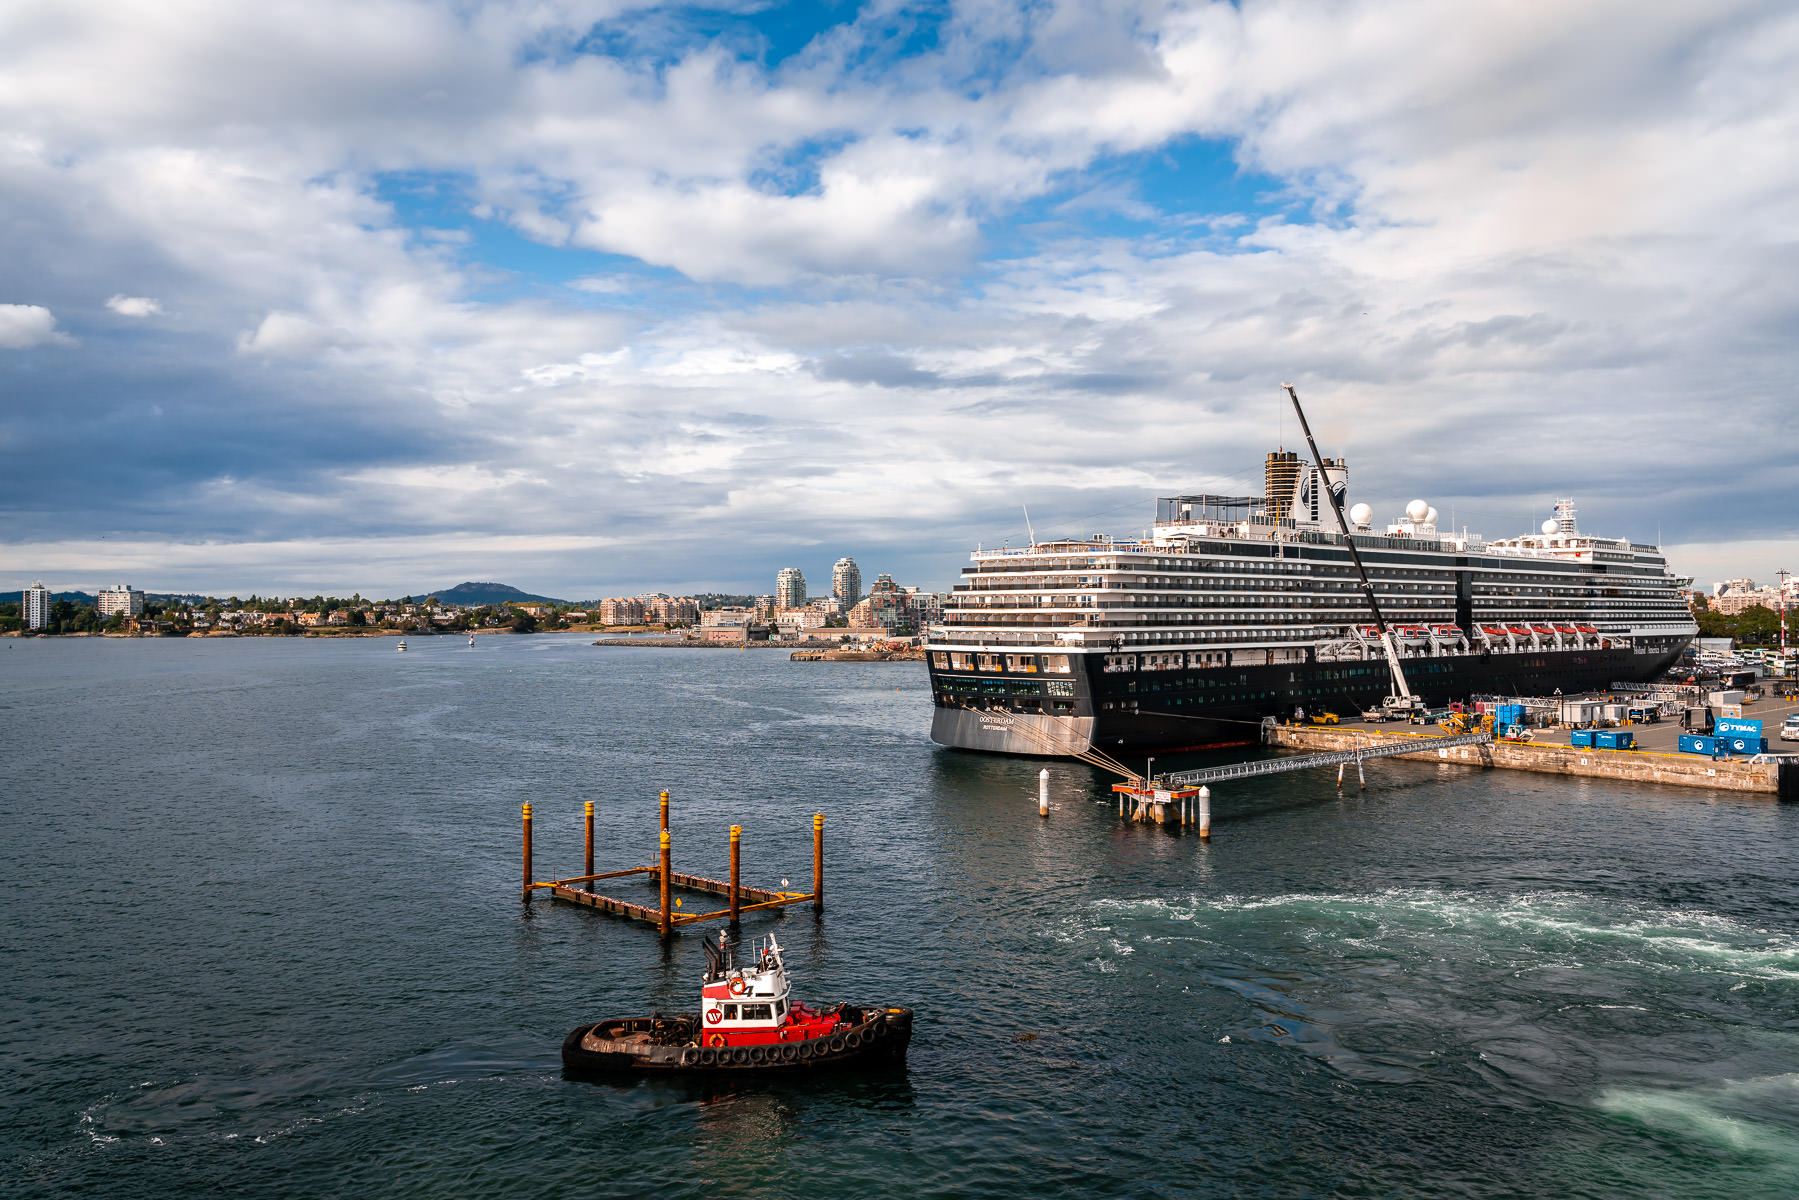 The Holland America cruise ship Oosterdam, docked in Victoria, British Columbia.